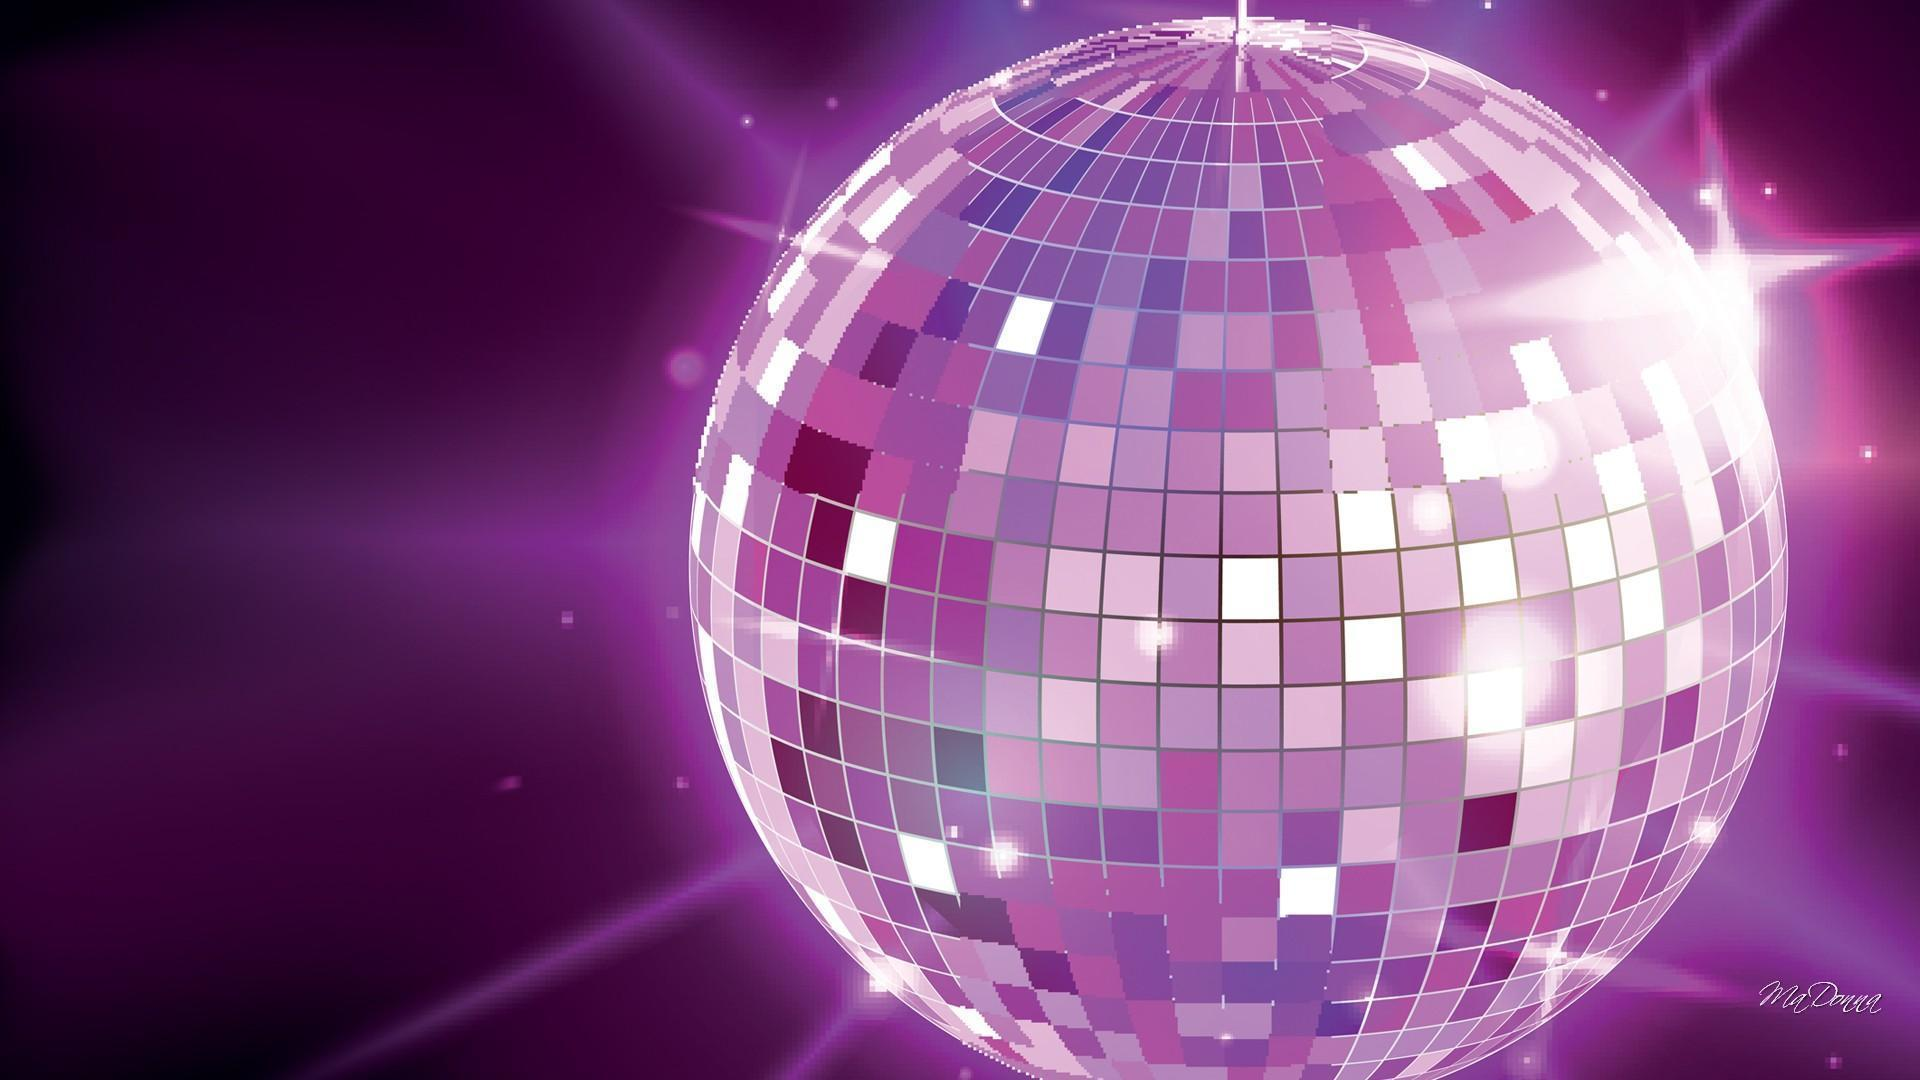 disco hd wallpapers - photo #1